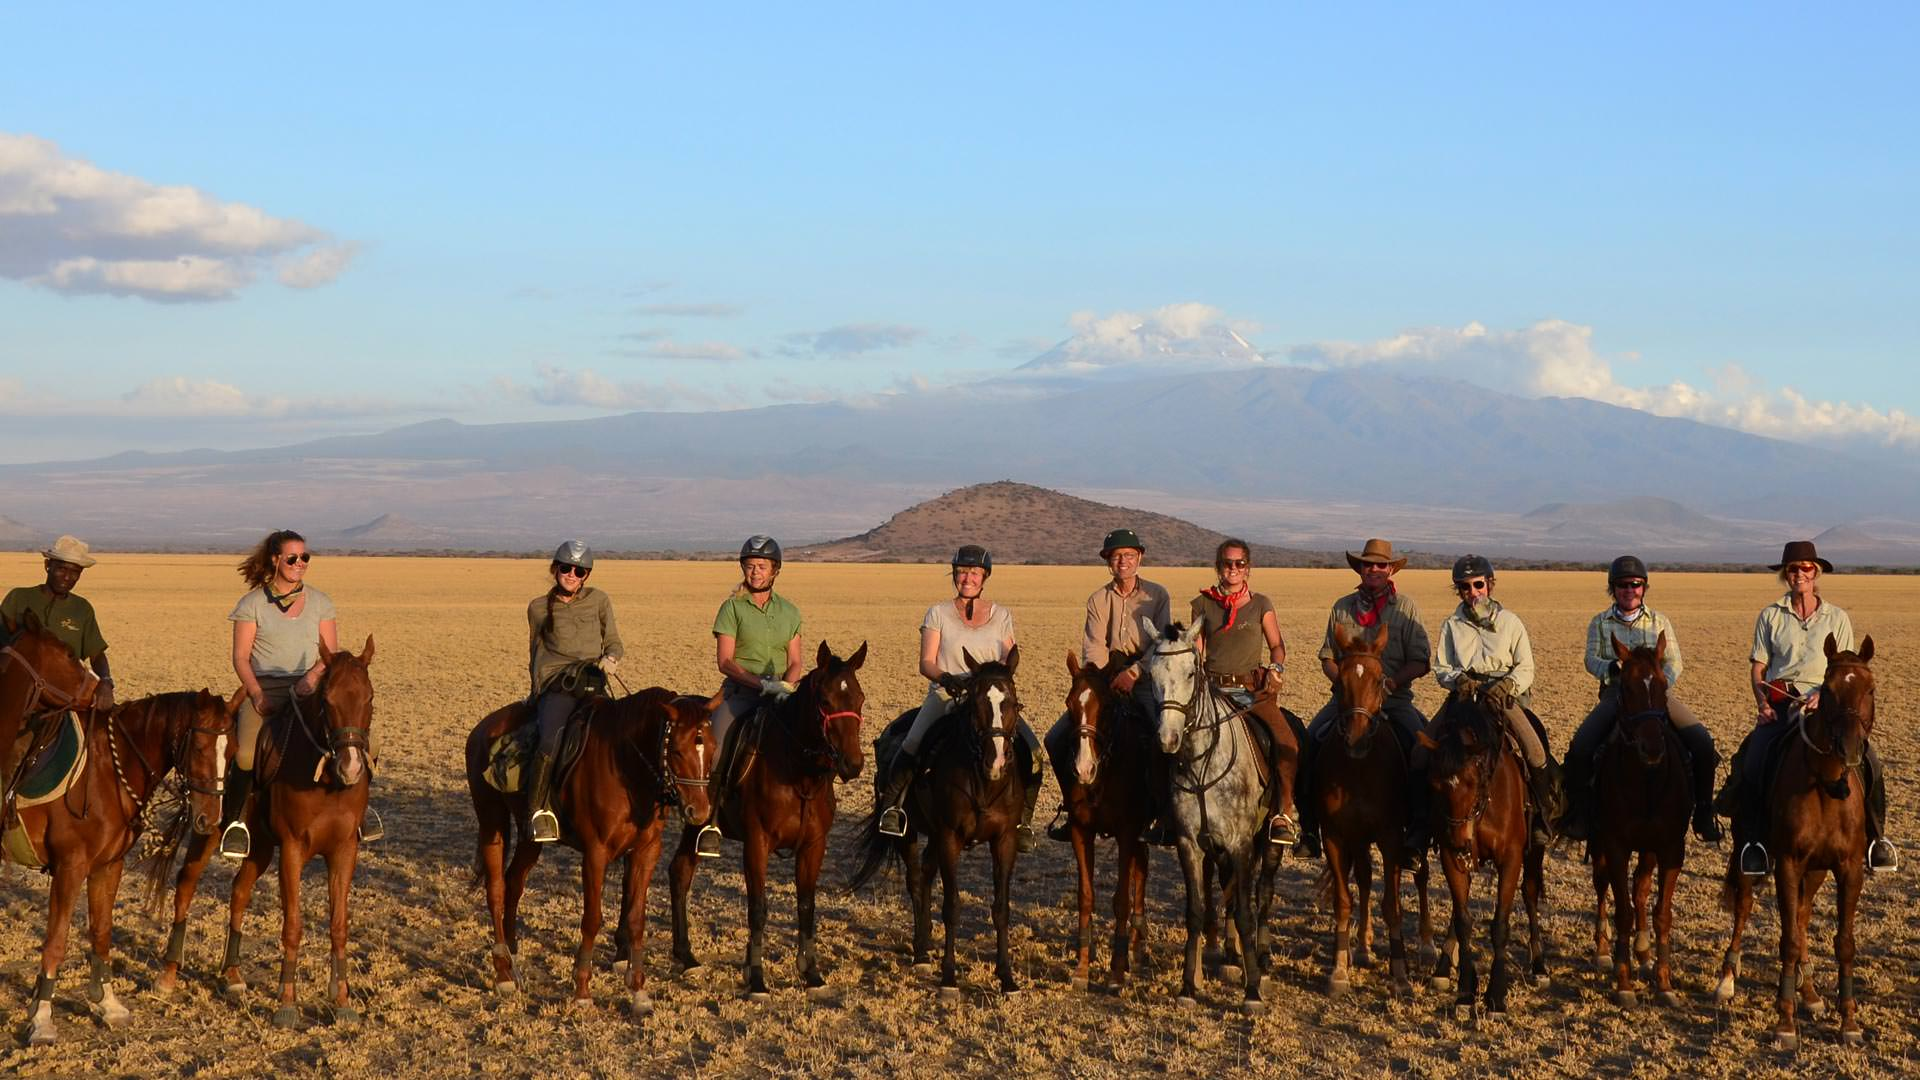 Lining up the horses in front of Kilimanjaro